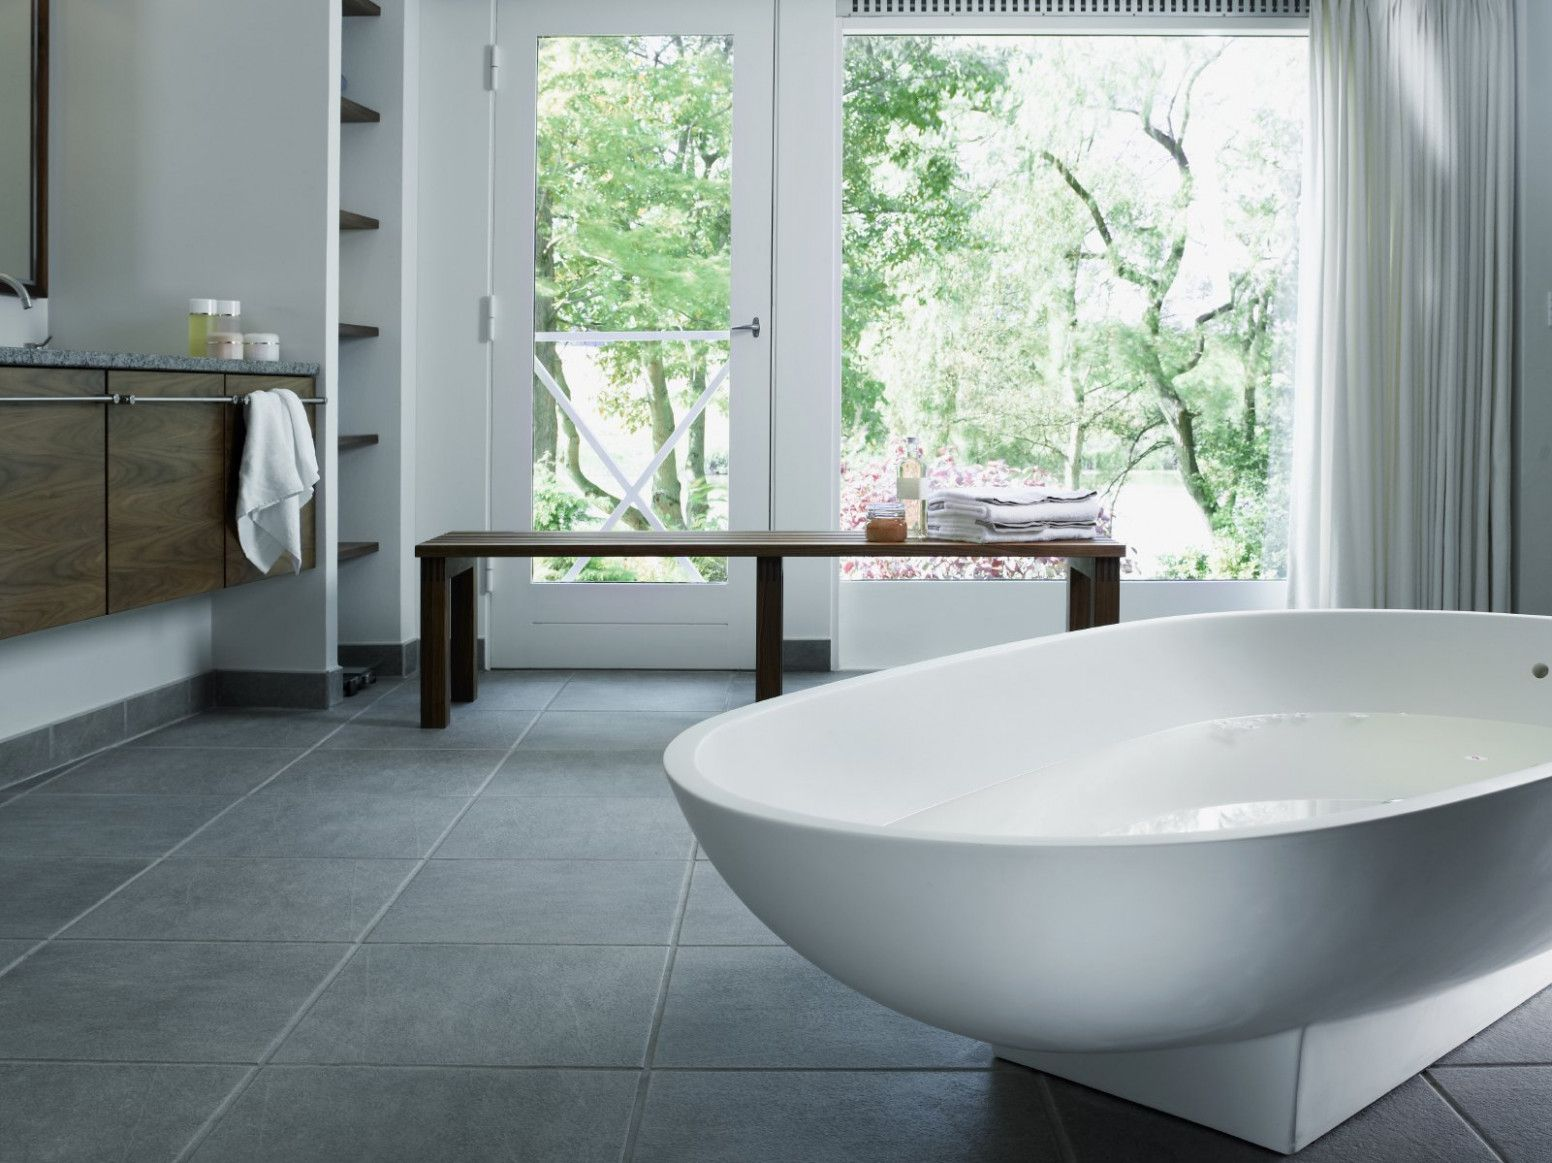 products, the story of garden bathtub tile bath tubs has just gone ...